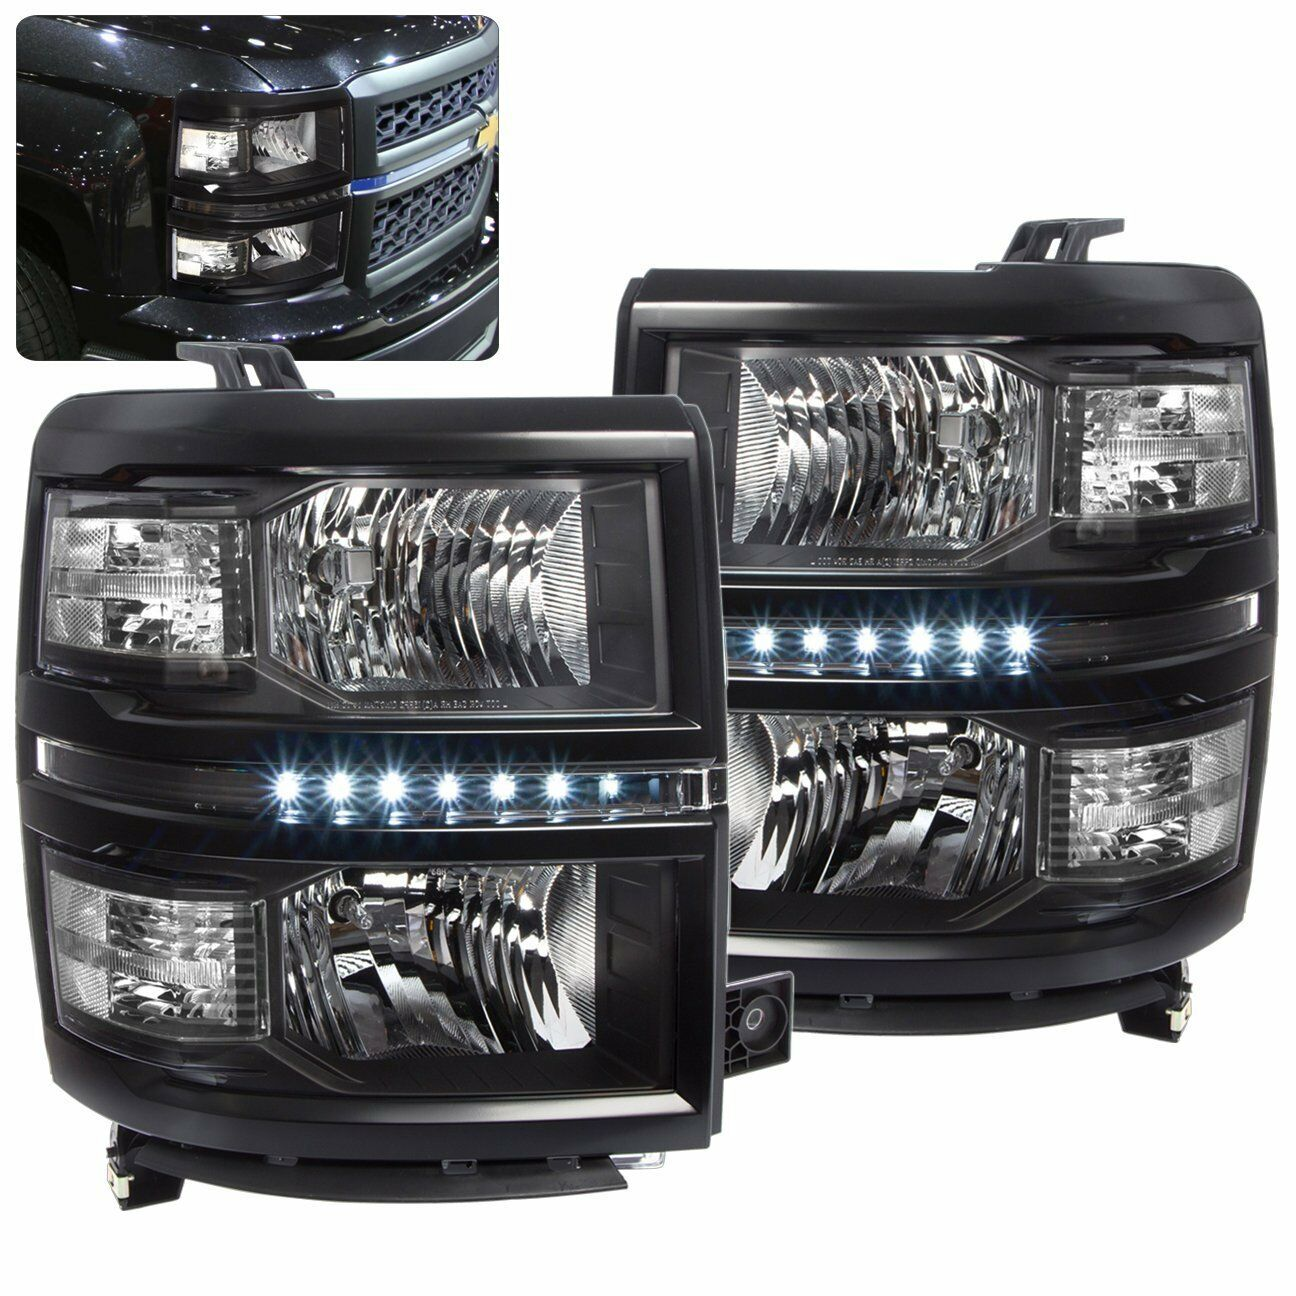 chevy silverado 1500 2014 2015 2016 headlight black. Black Bedroom Furniture Sets. Home Design Ideas